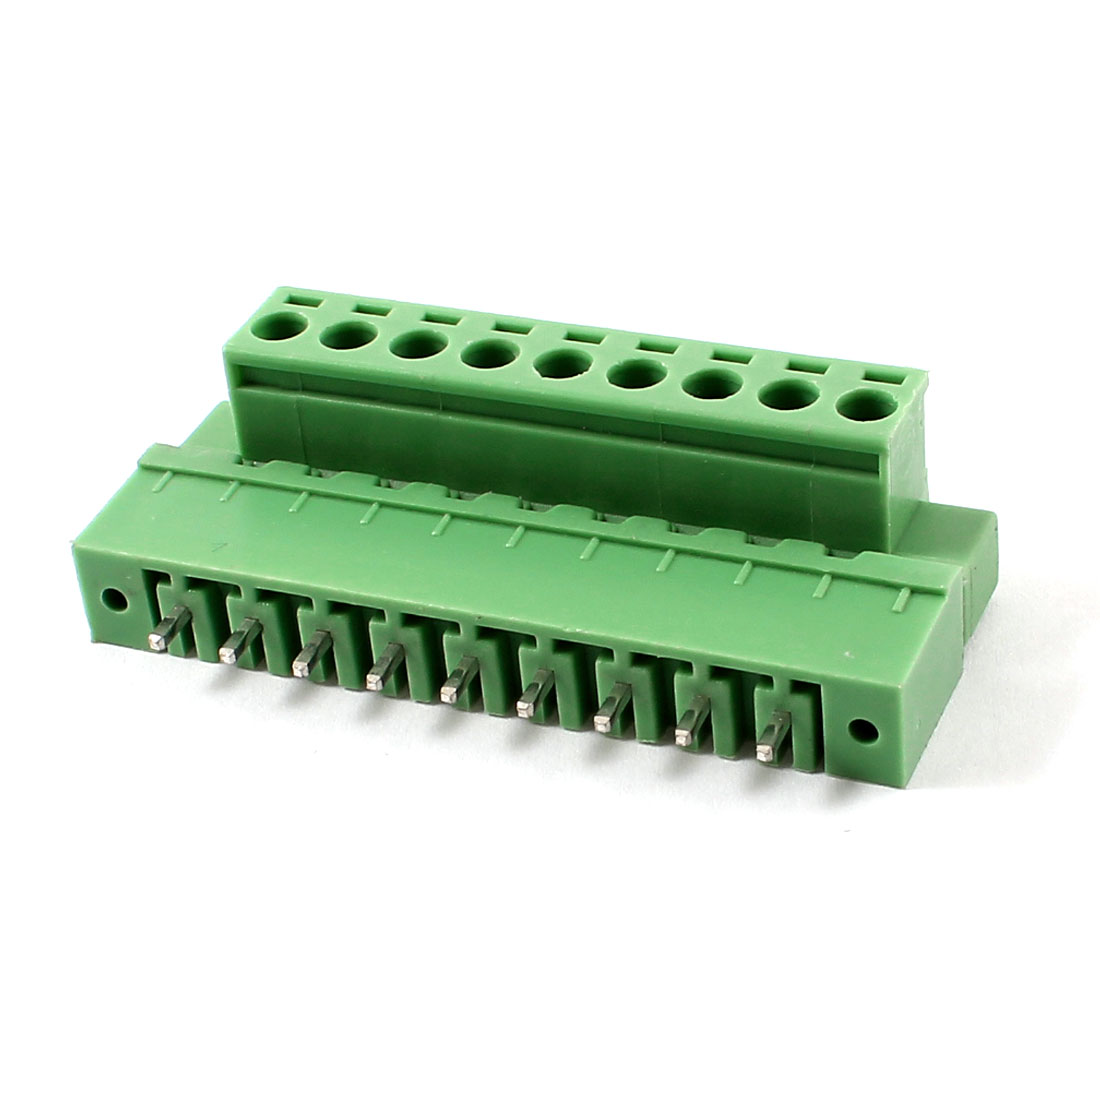 Pair 300V 10A 5.08mm Pitch 9 Pin Screw Plug In Terminal Block Green